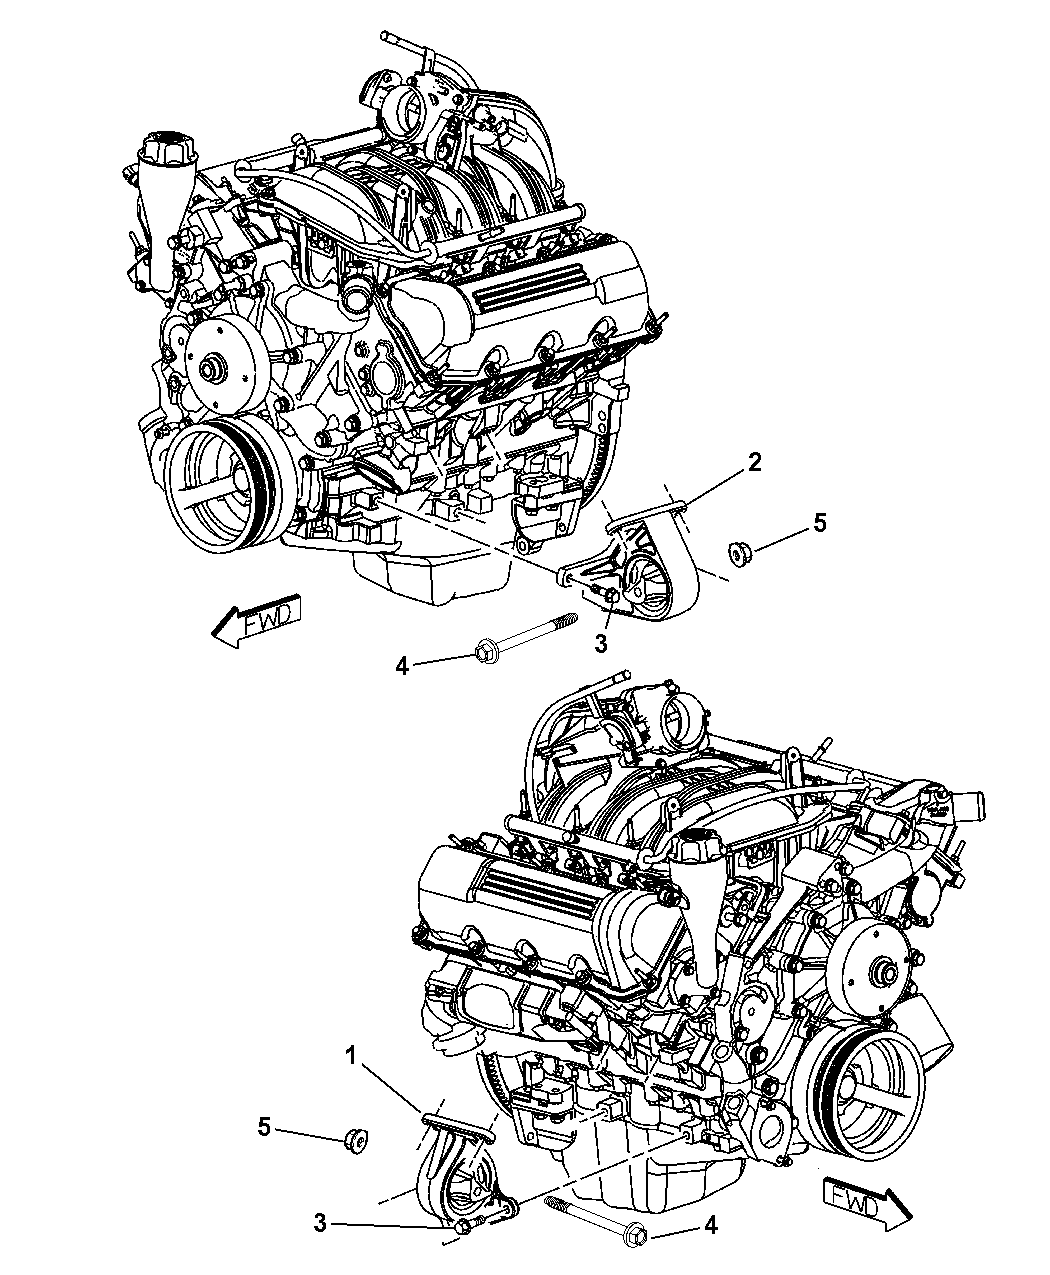 2003 Jeep Liberty Engine Diagram - All of Wiring Diagram